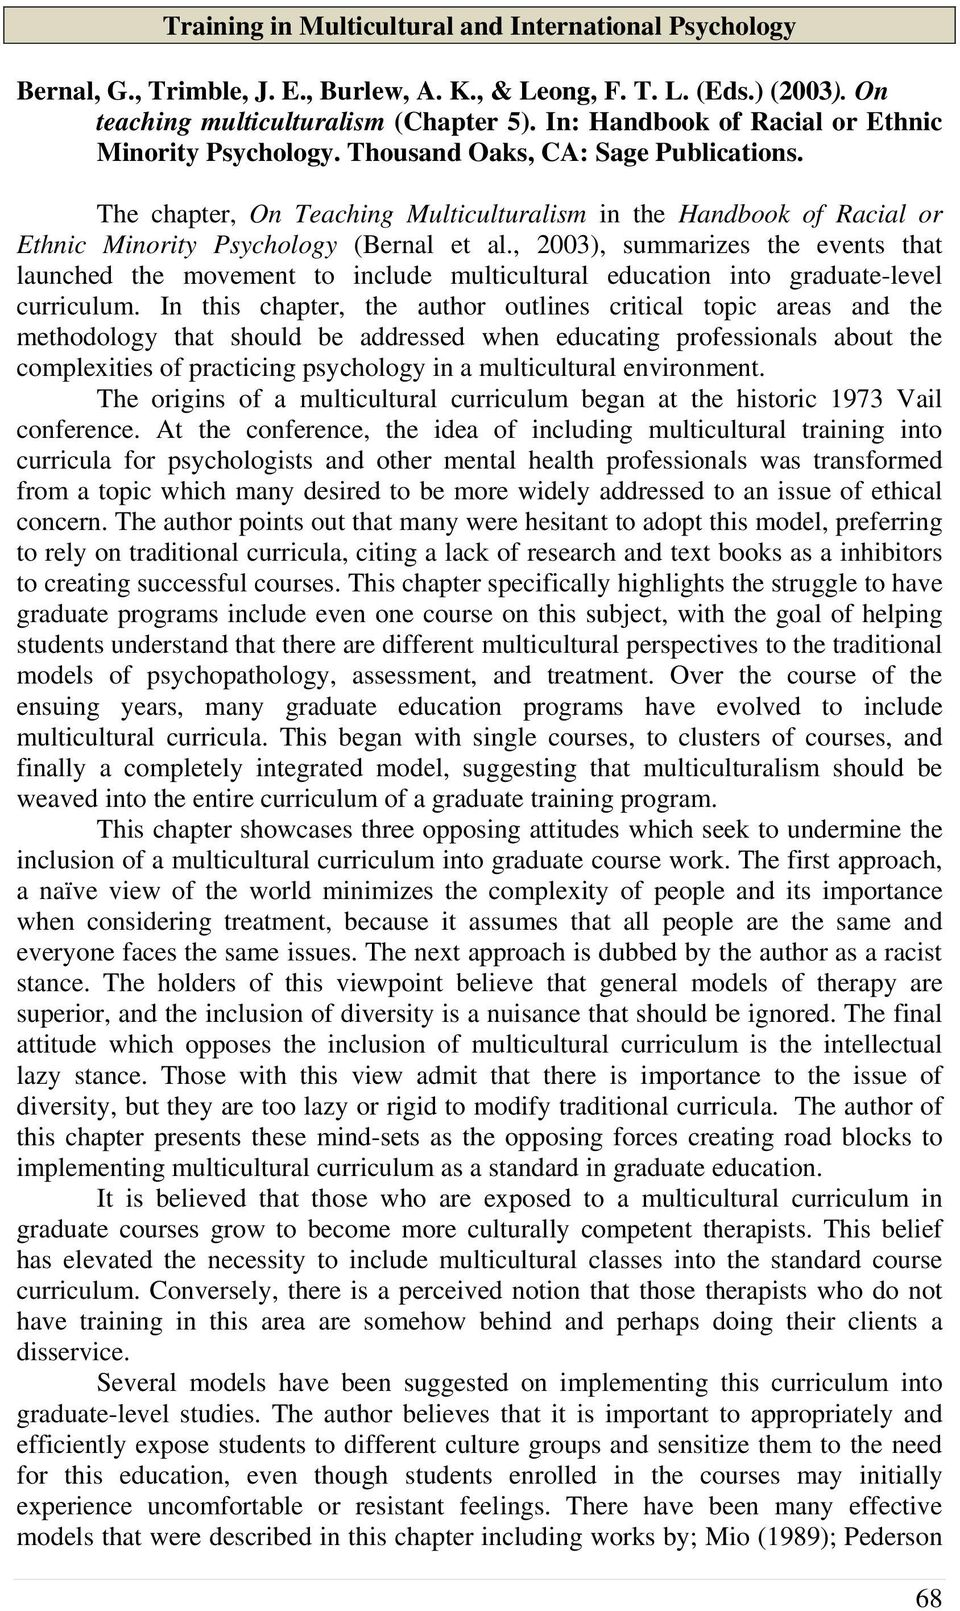 The chapter, On Teaching Multiculturalism in the Handbook of Racial or Ethnic Minority Psychology (Bernal et al.